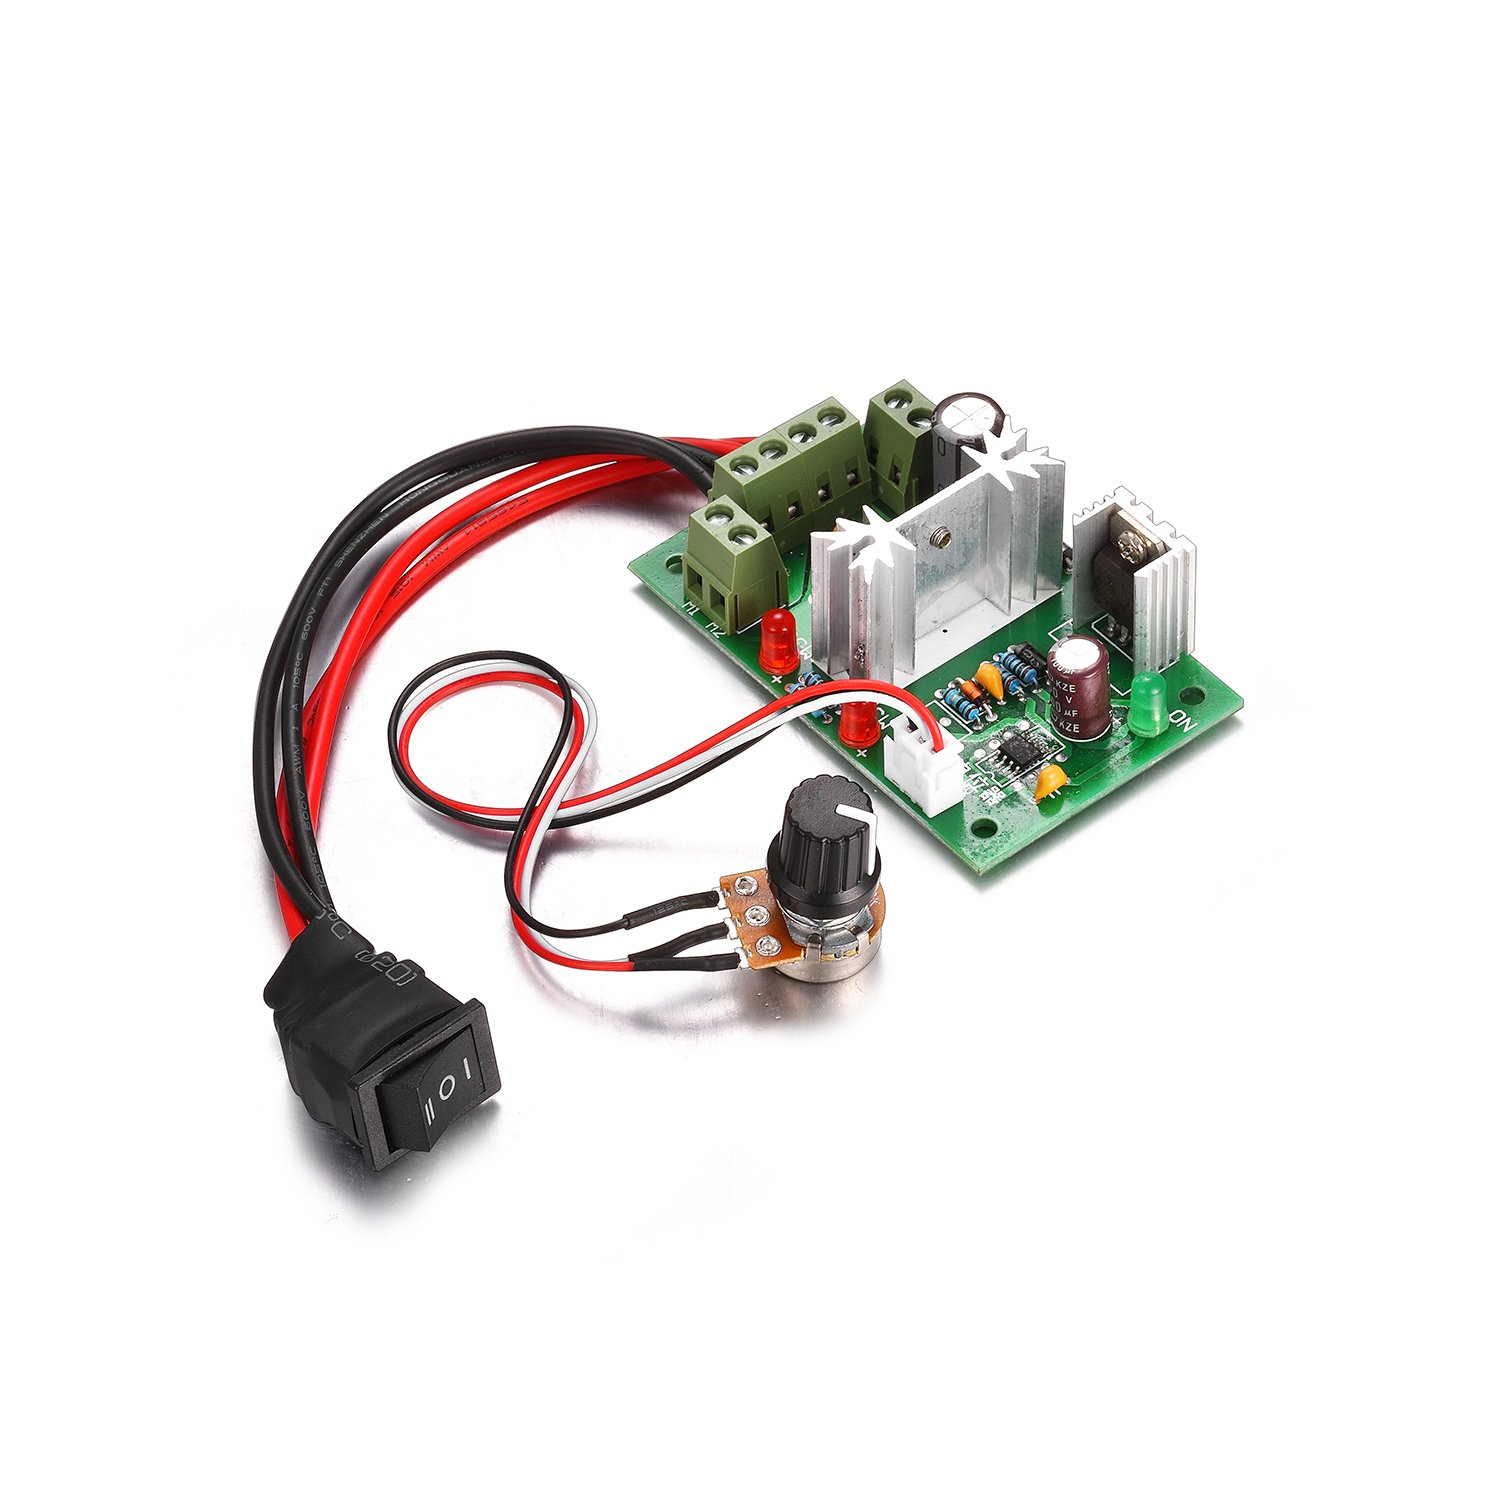 Aweking DC10-30V 12V 24V 3A Motor Speed Controller,PWM,Adjustable Driver,Max80W,5%-95% Speed Controlling,With Switch potentiometer,Reversing Switch,LED Indicator,Brush Motor